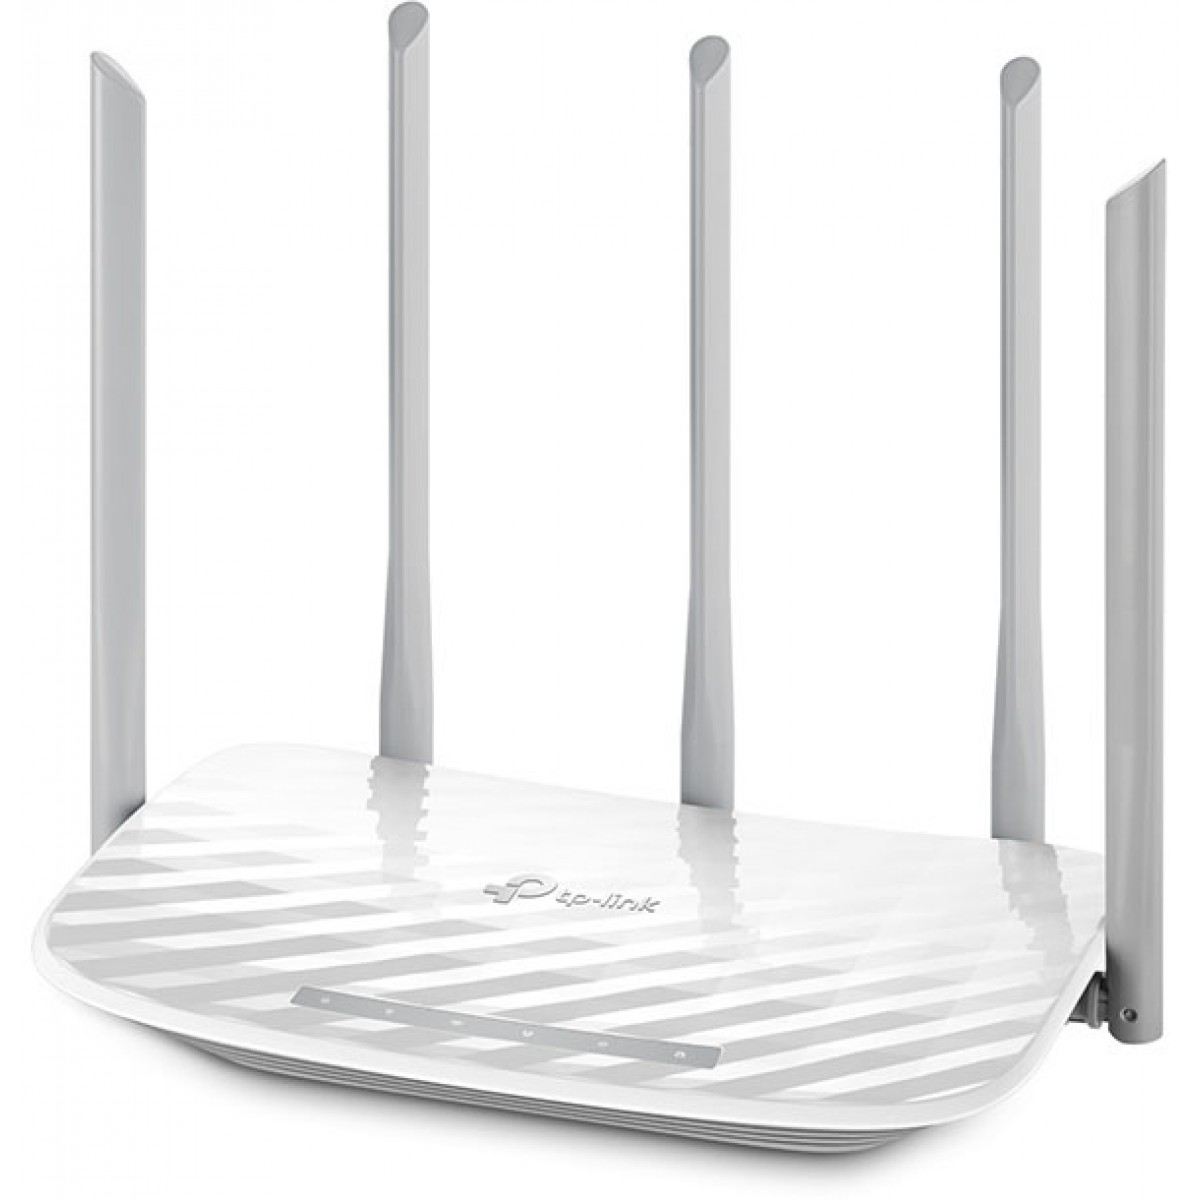 Roteador Wireless TP-LINK Archer C60 Dual-band Wireless AC1350 5GHz 867Mbps 802.11ac